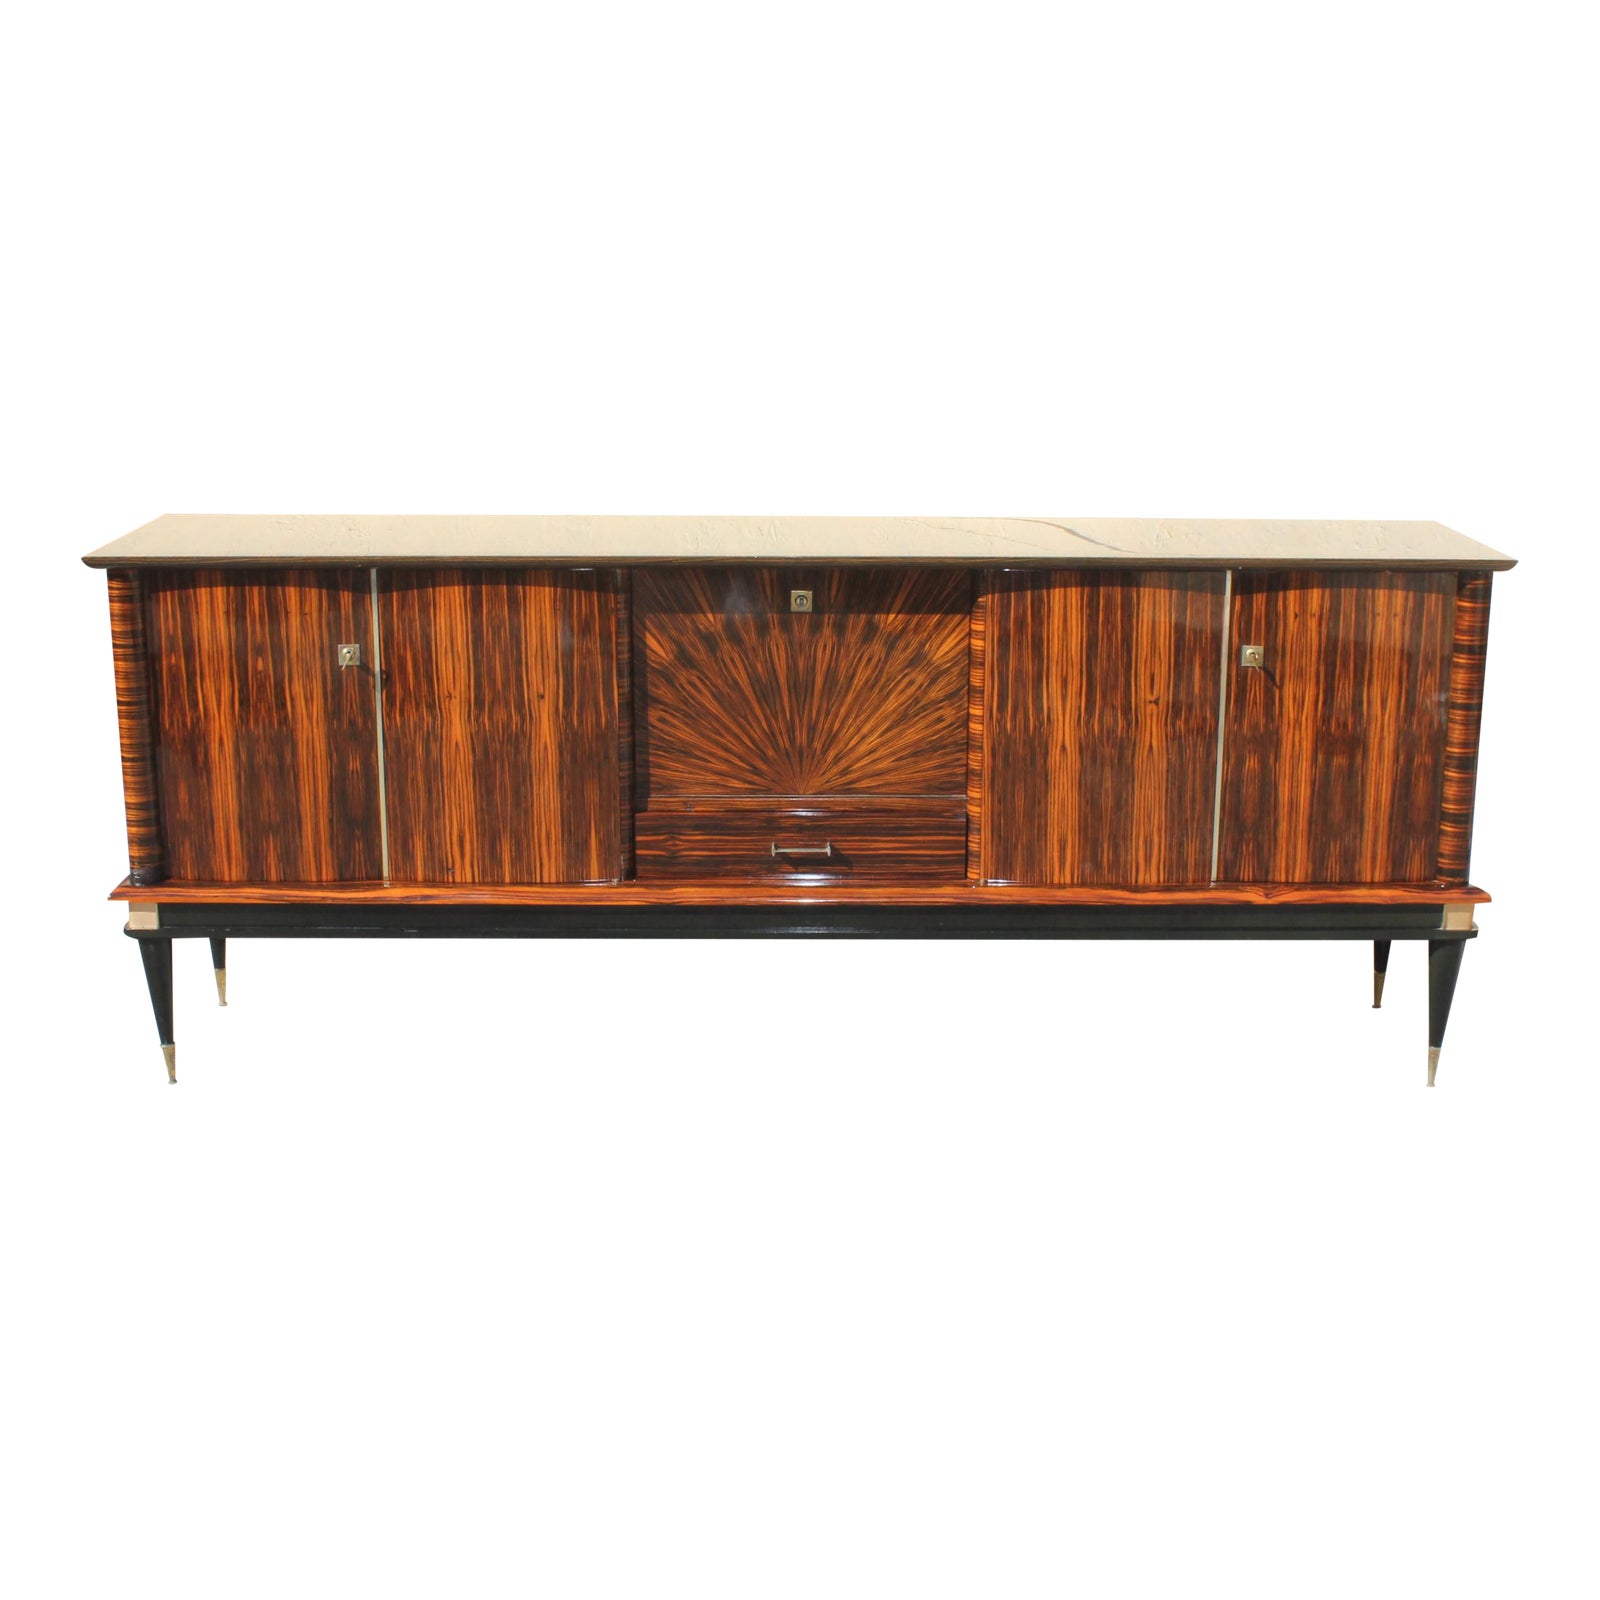 Masterpiece French Art Deco Macassar Ebony Sunburst Sideboard Buffet, Circa